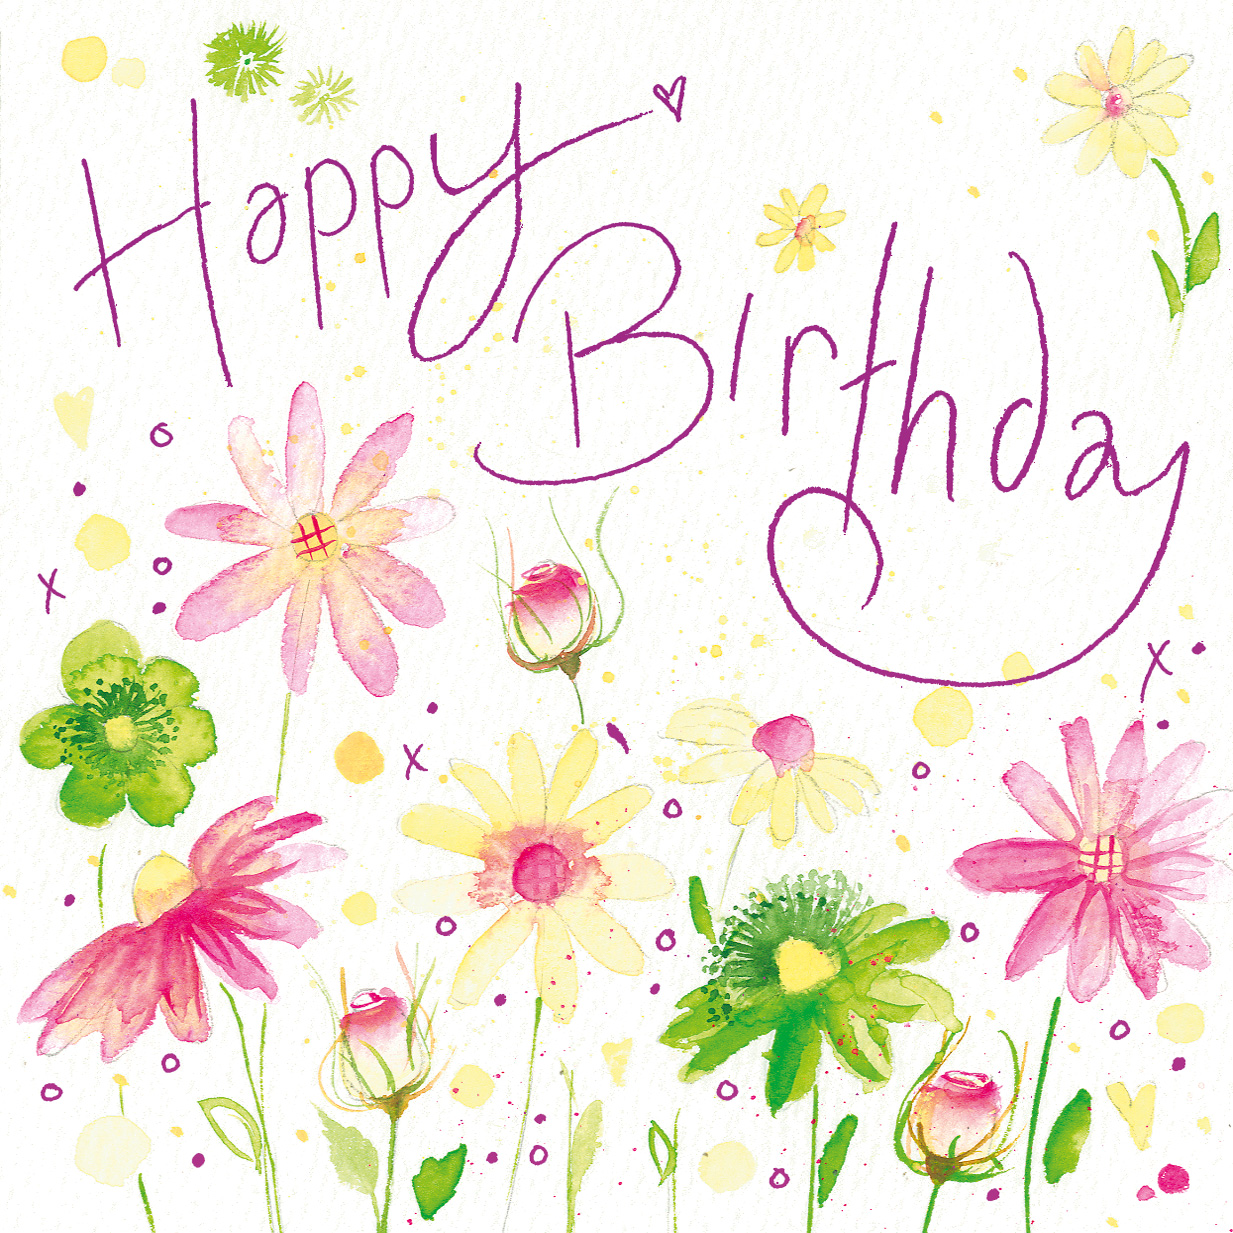 birthday greeting cards images with flowers ; 1eb0298d34f84ac2529e2f239851410c